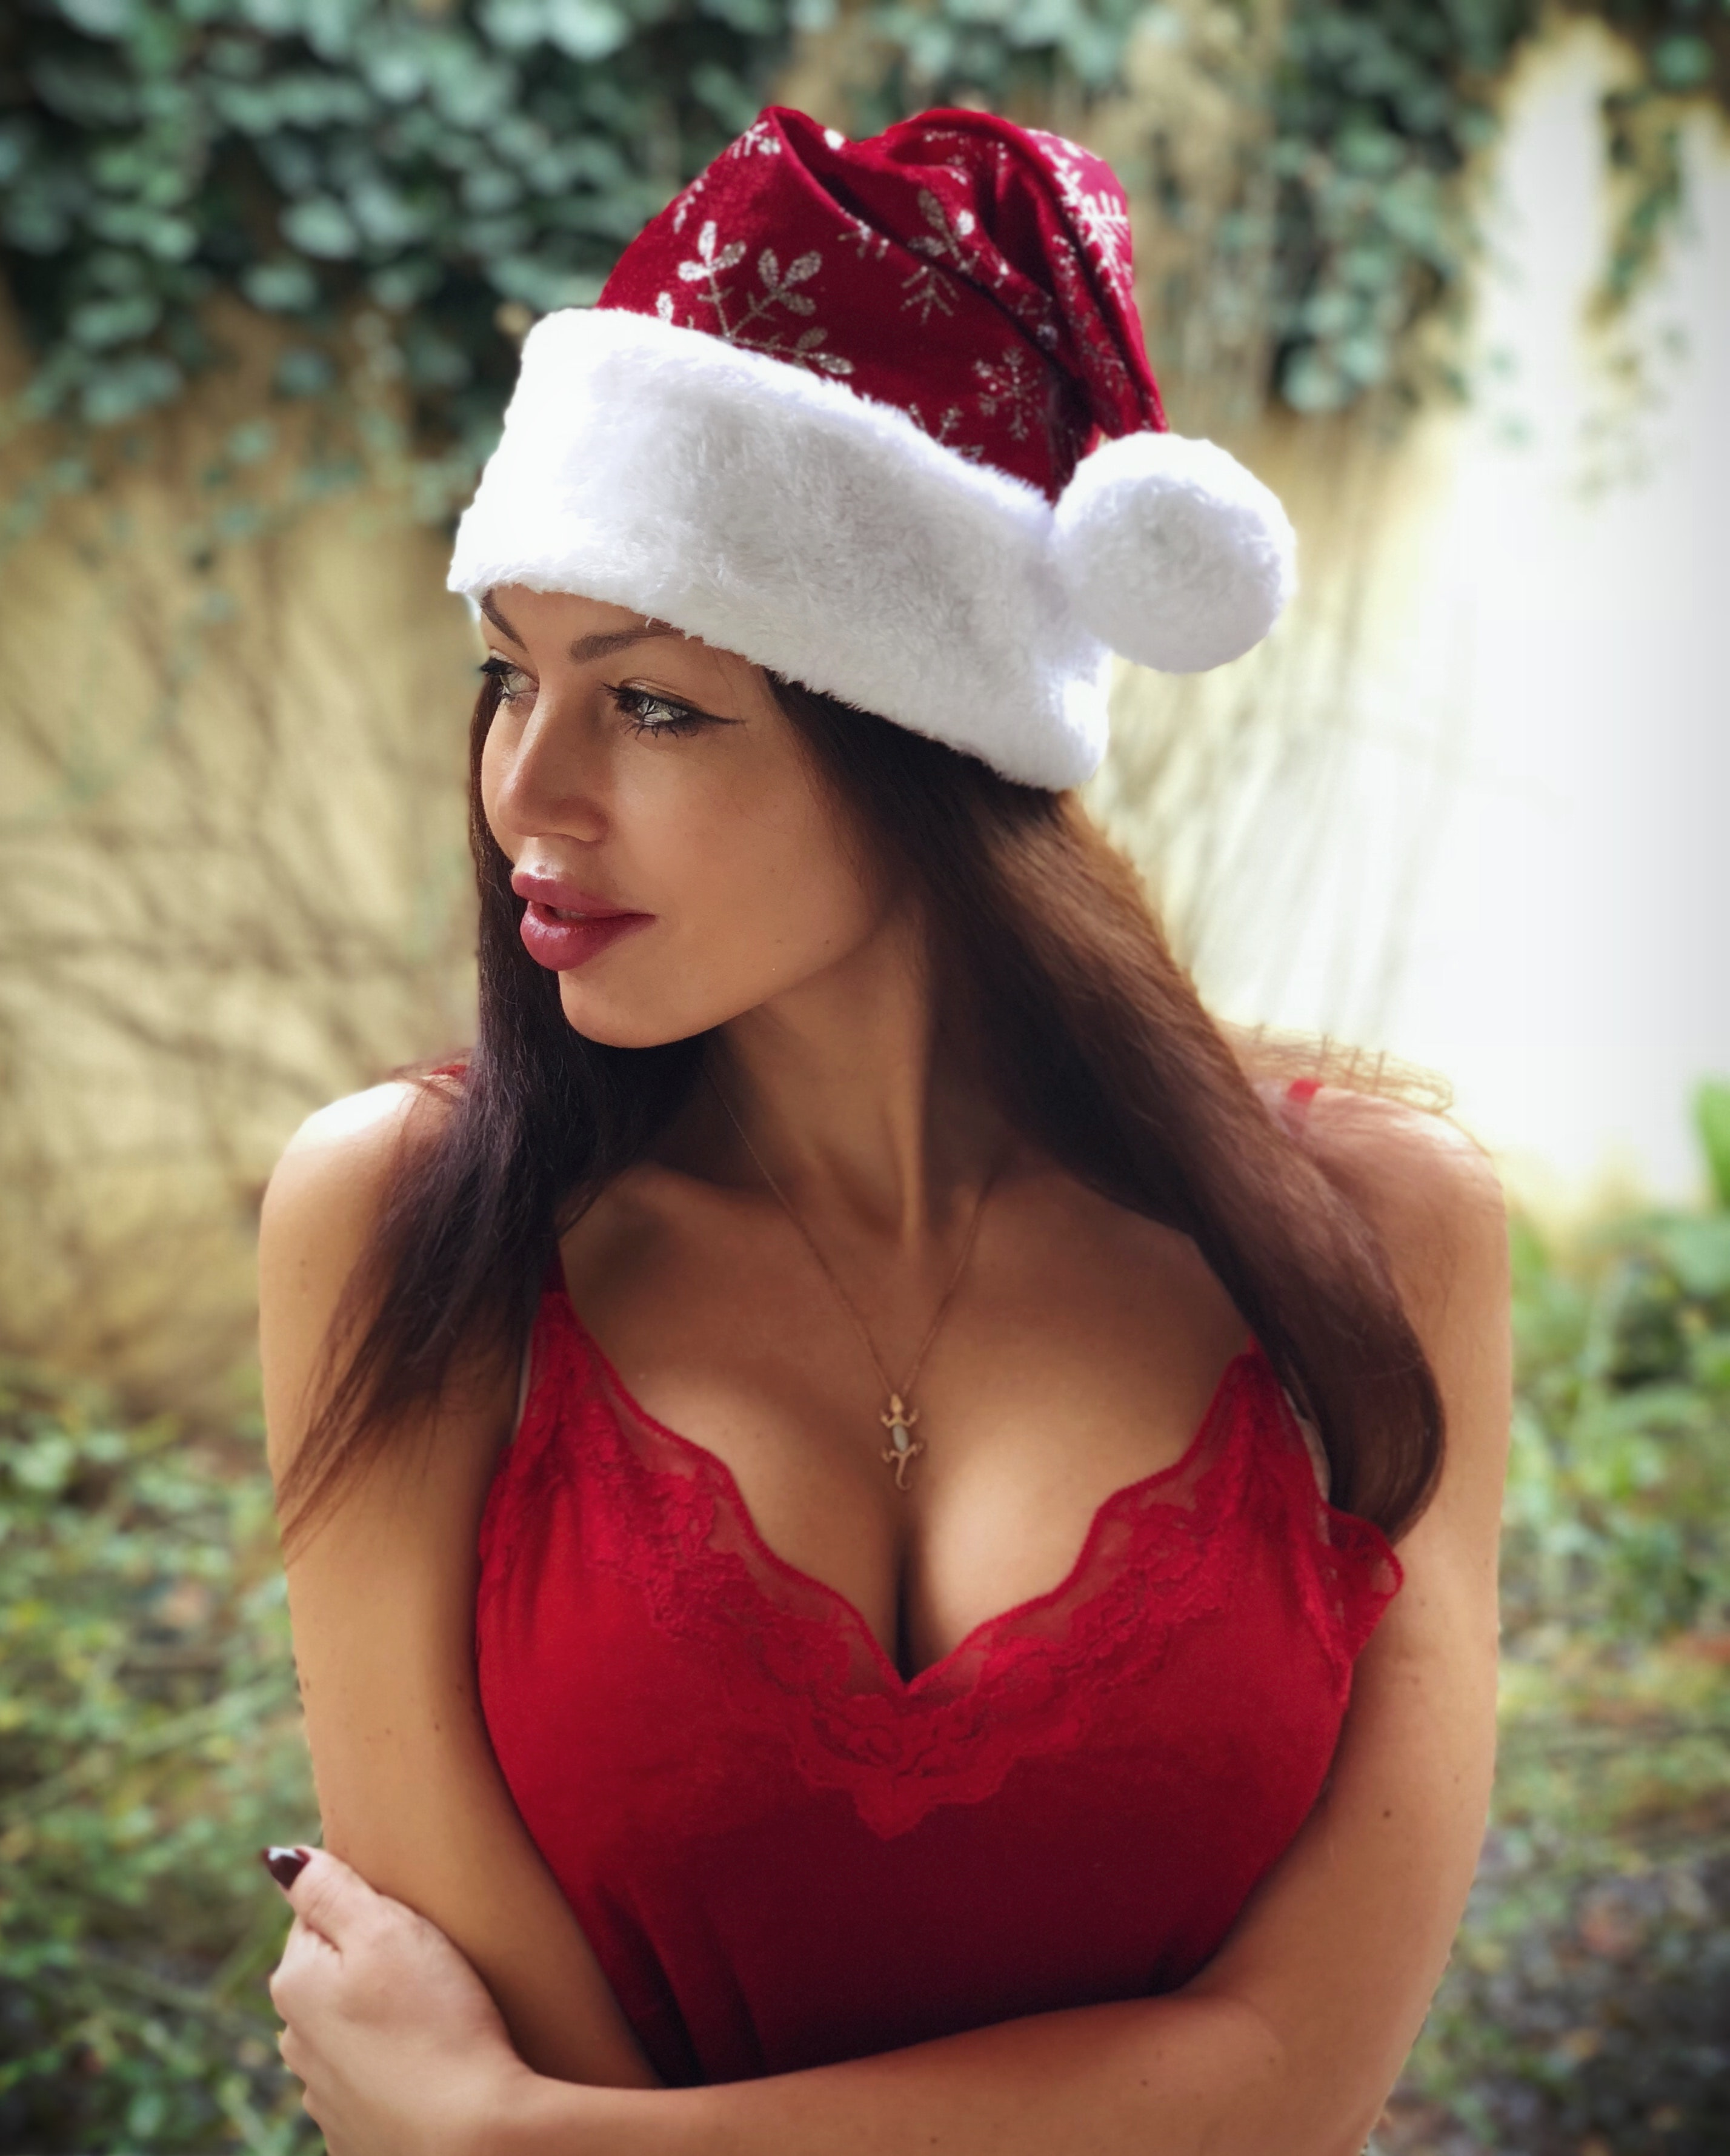 Photography of Woman Wearing Santa Hat, Adult, Lady, Wear, Smiling, HQ Photo